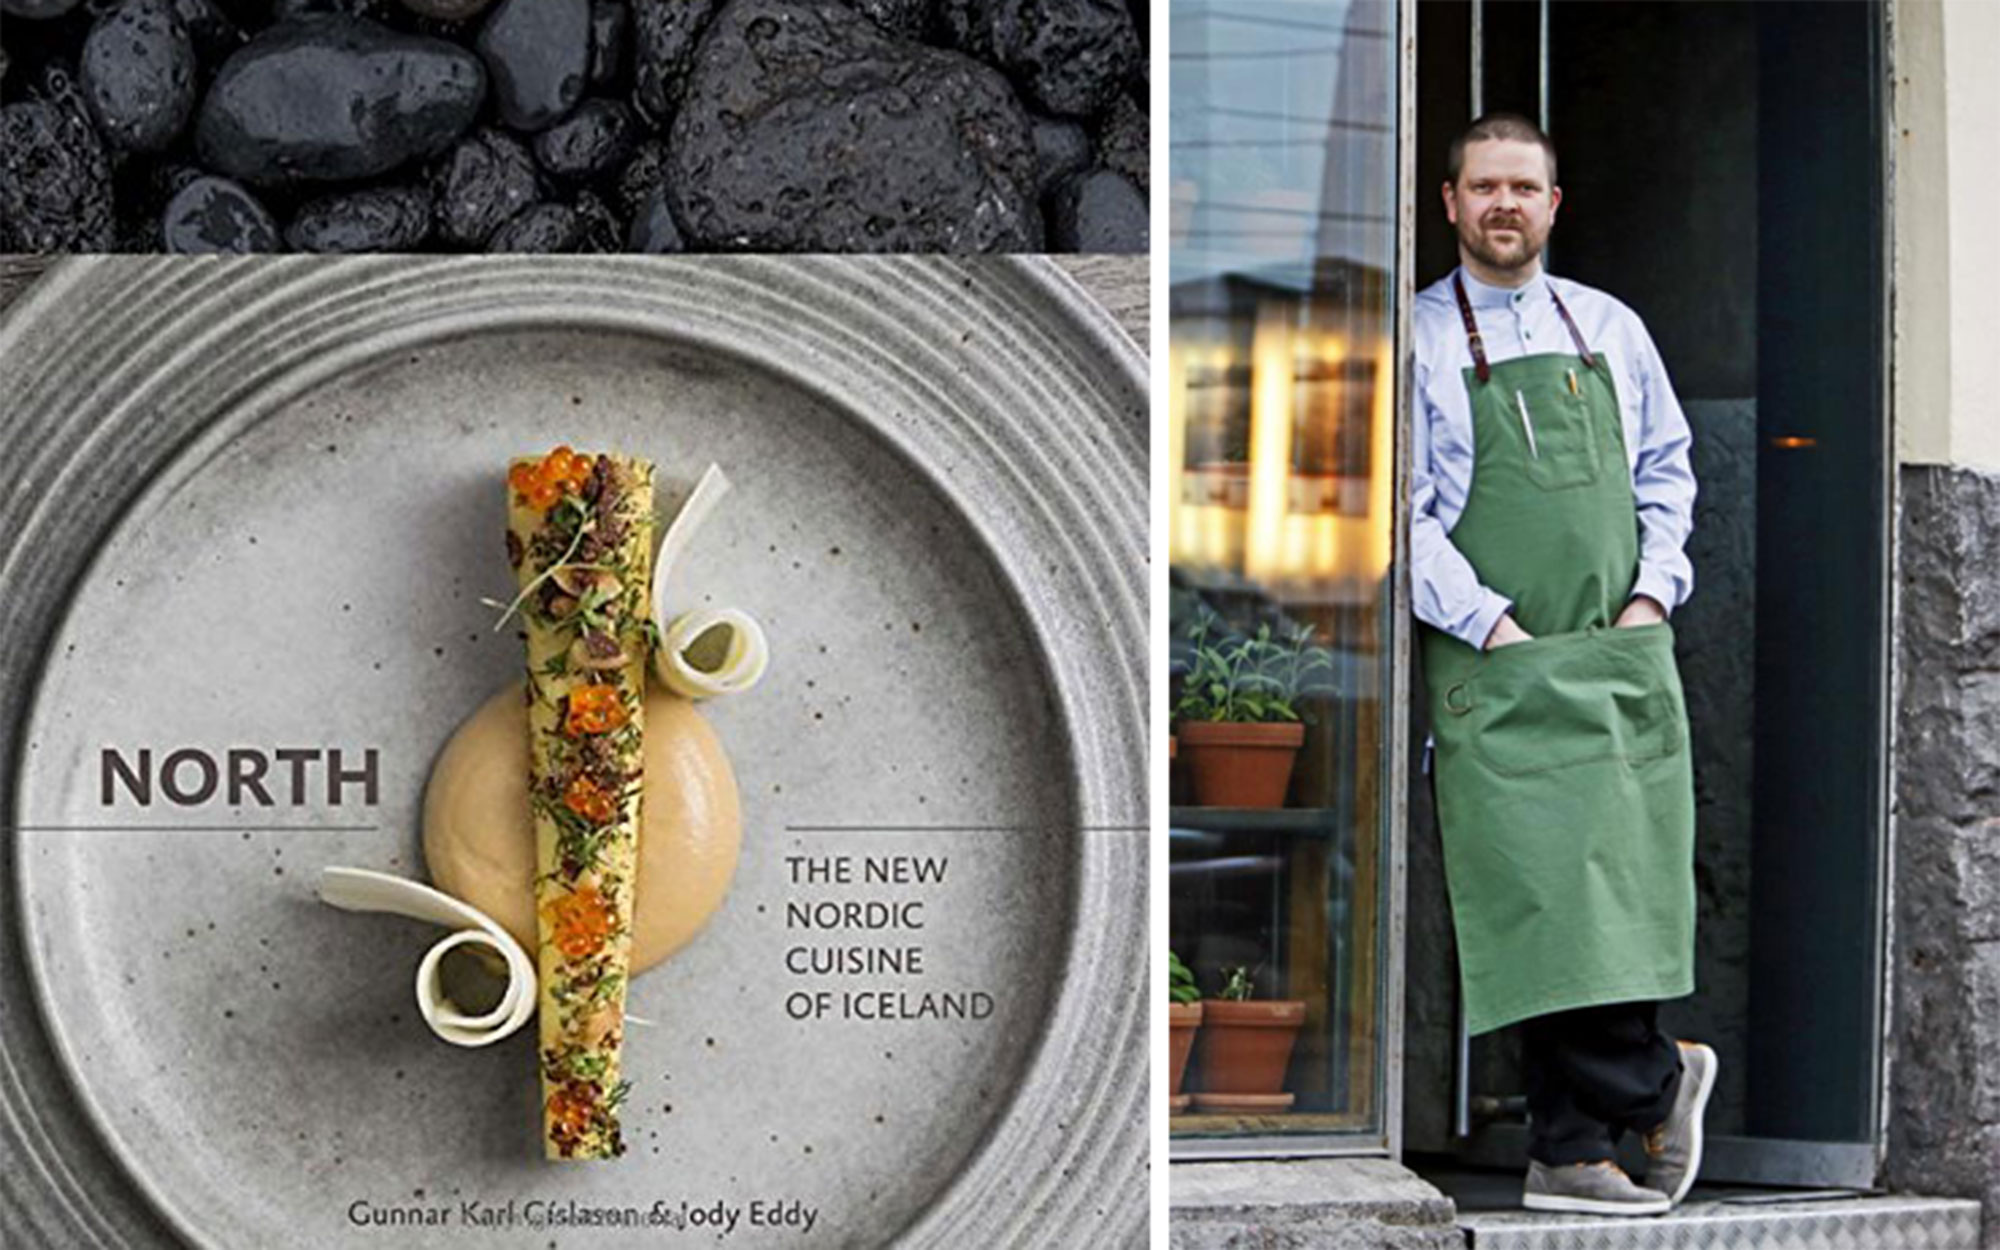 Q&A with Icelandic Chef Gunnar Karl Gislason